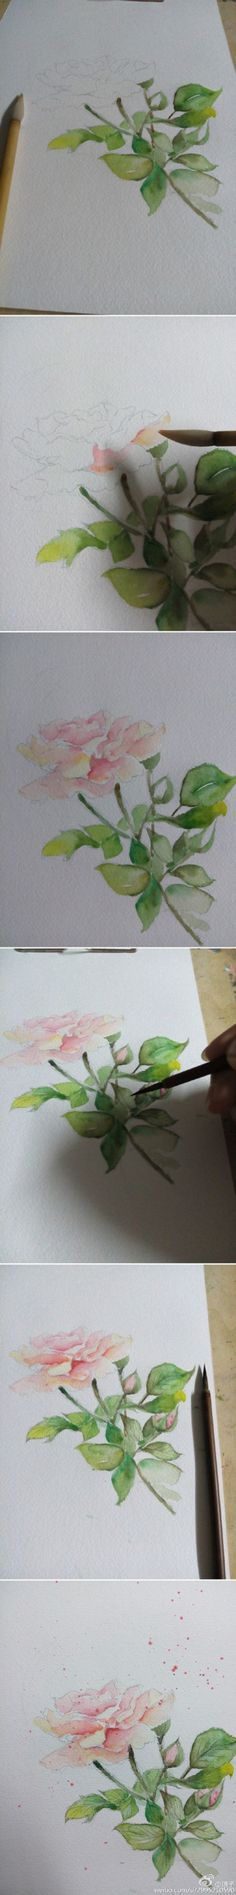 20 Delicate Colorful Watercolor Flower Painting Tutorials In Images-HOMESTHETICS (2) #watercolorarts